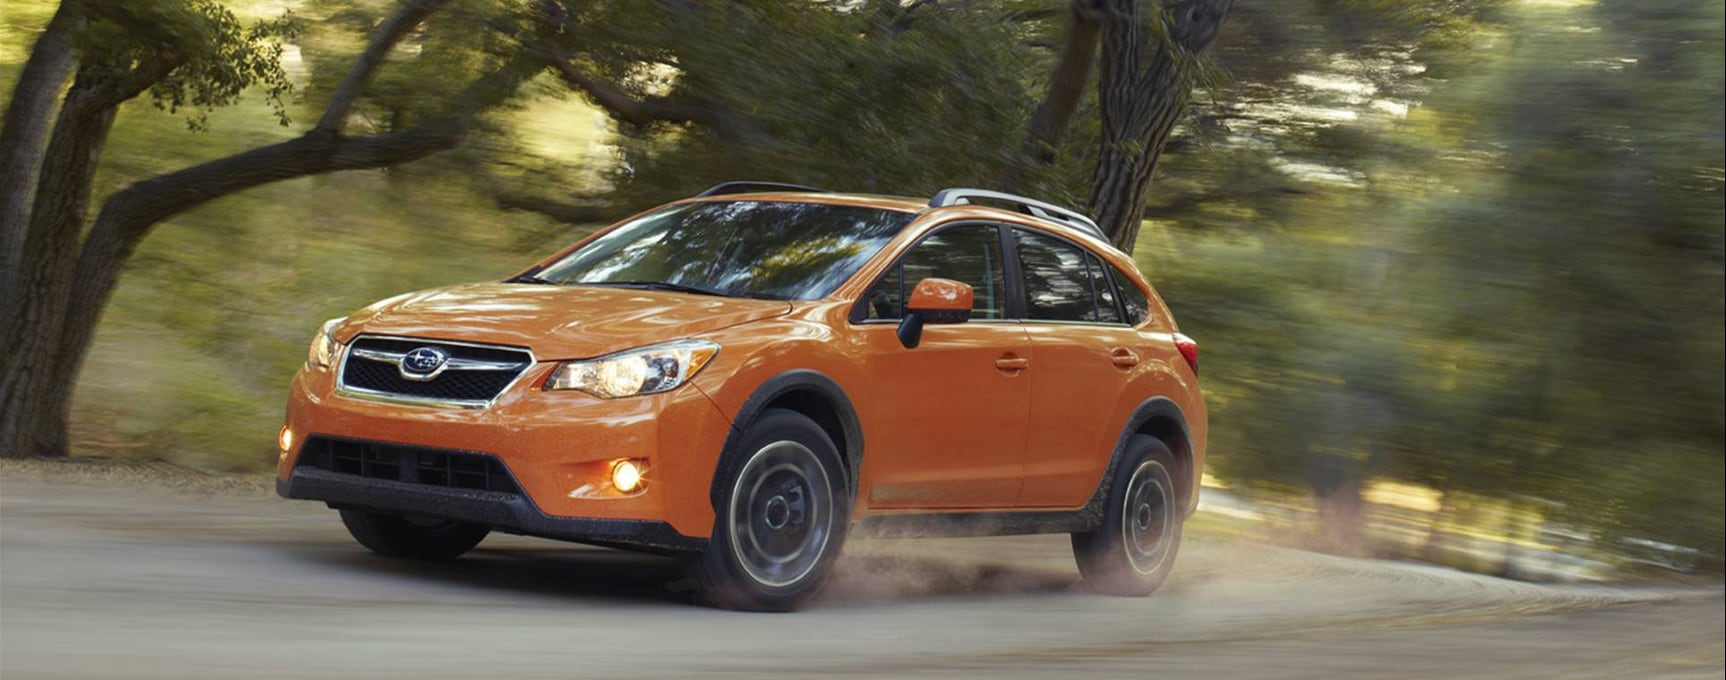 Subaru XV Crosstrek in orange for sale in Somerset, NJ